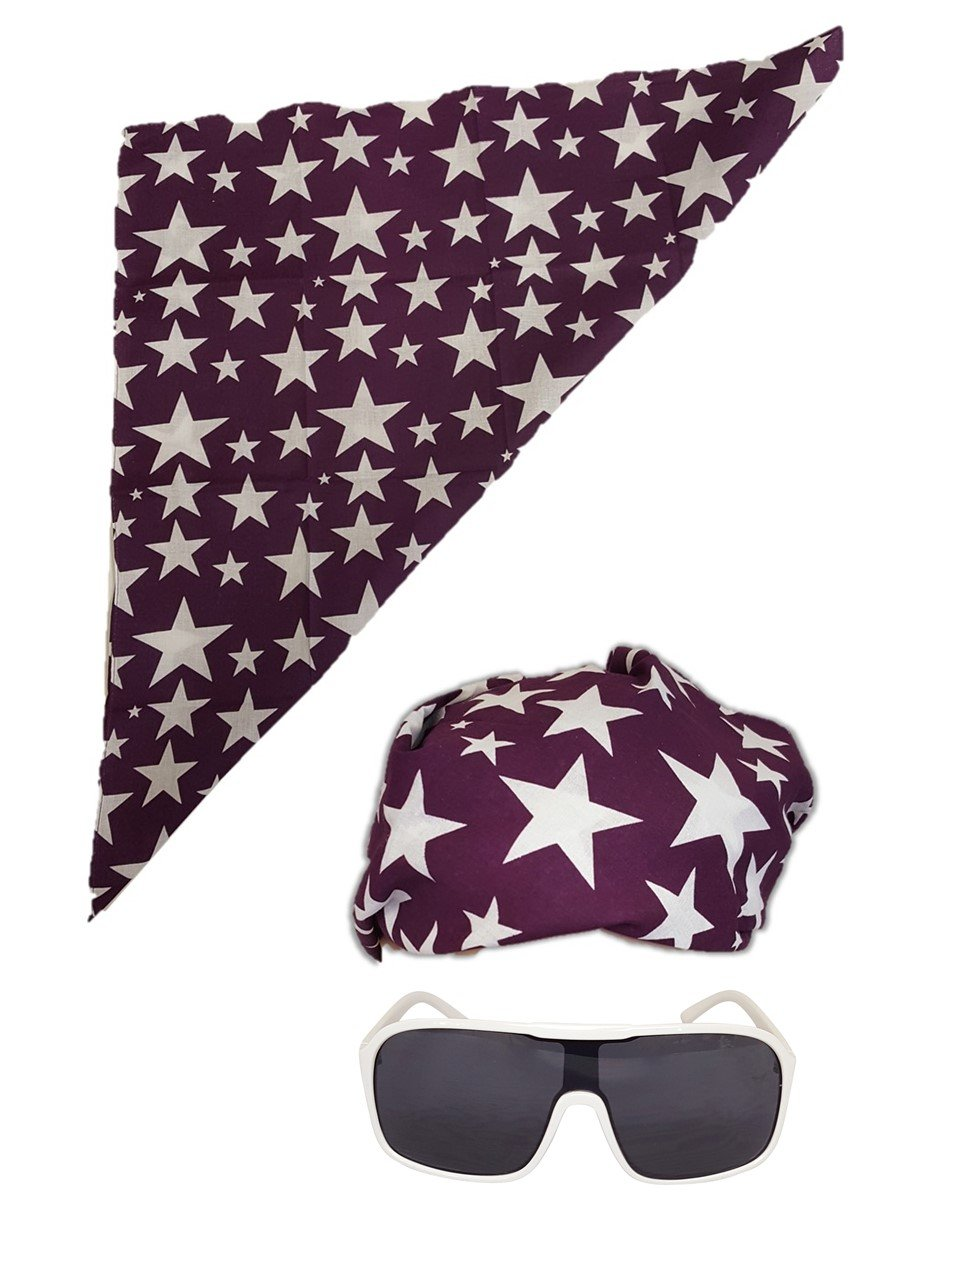 Colored Stars Bandana White Sunglasses for Macho Man Costume-Purple